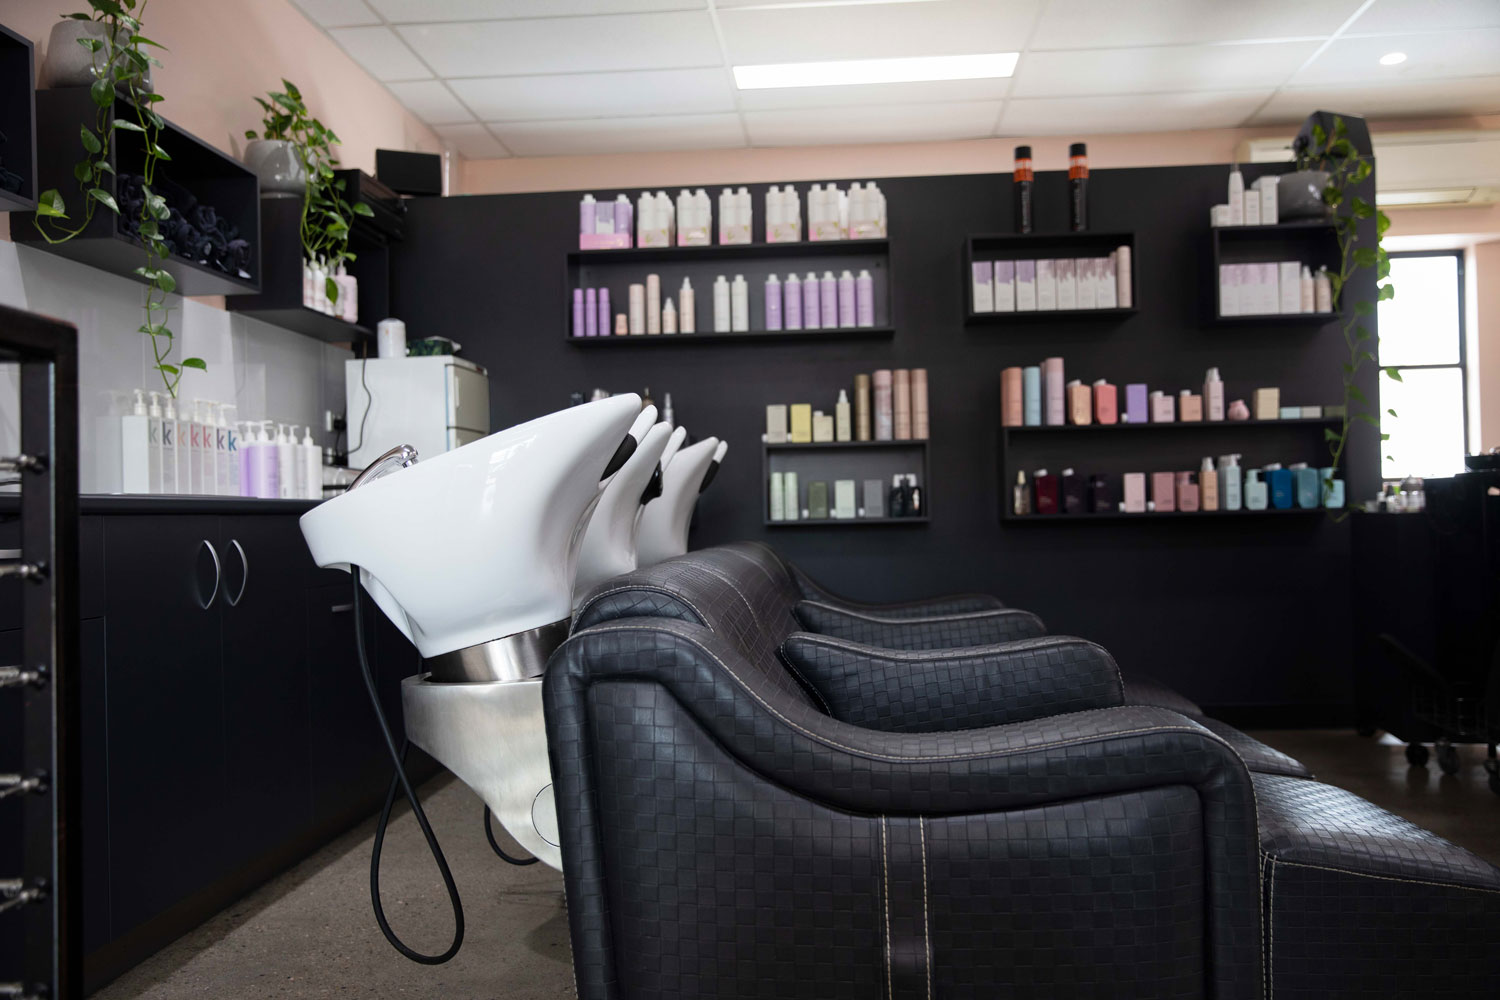 bhair salon shampoo and coloring area